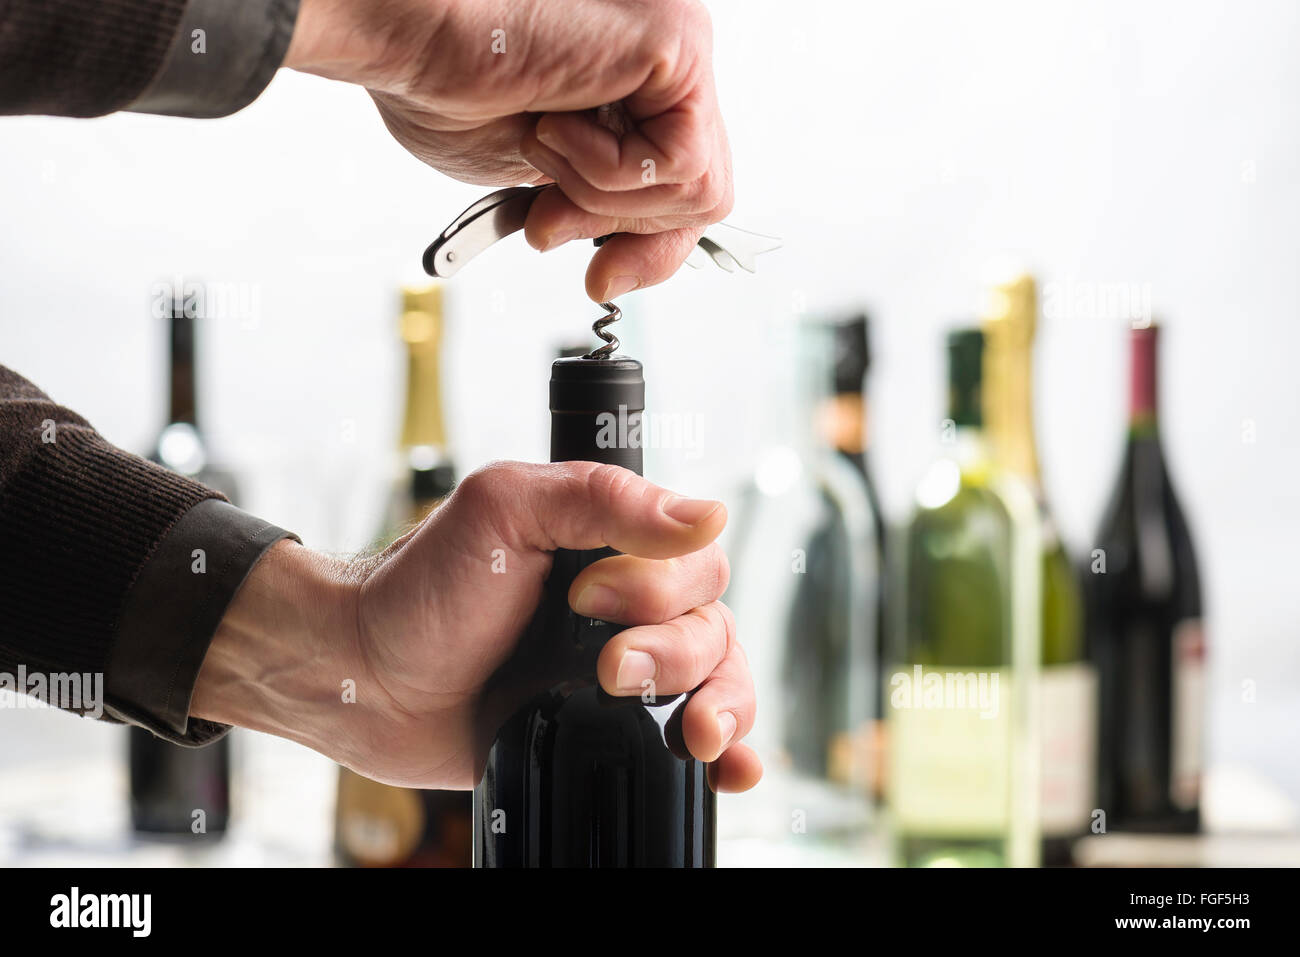 Opening bottle of wine with corkscrew Stock Photo